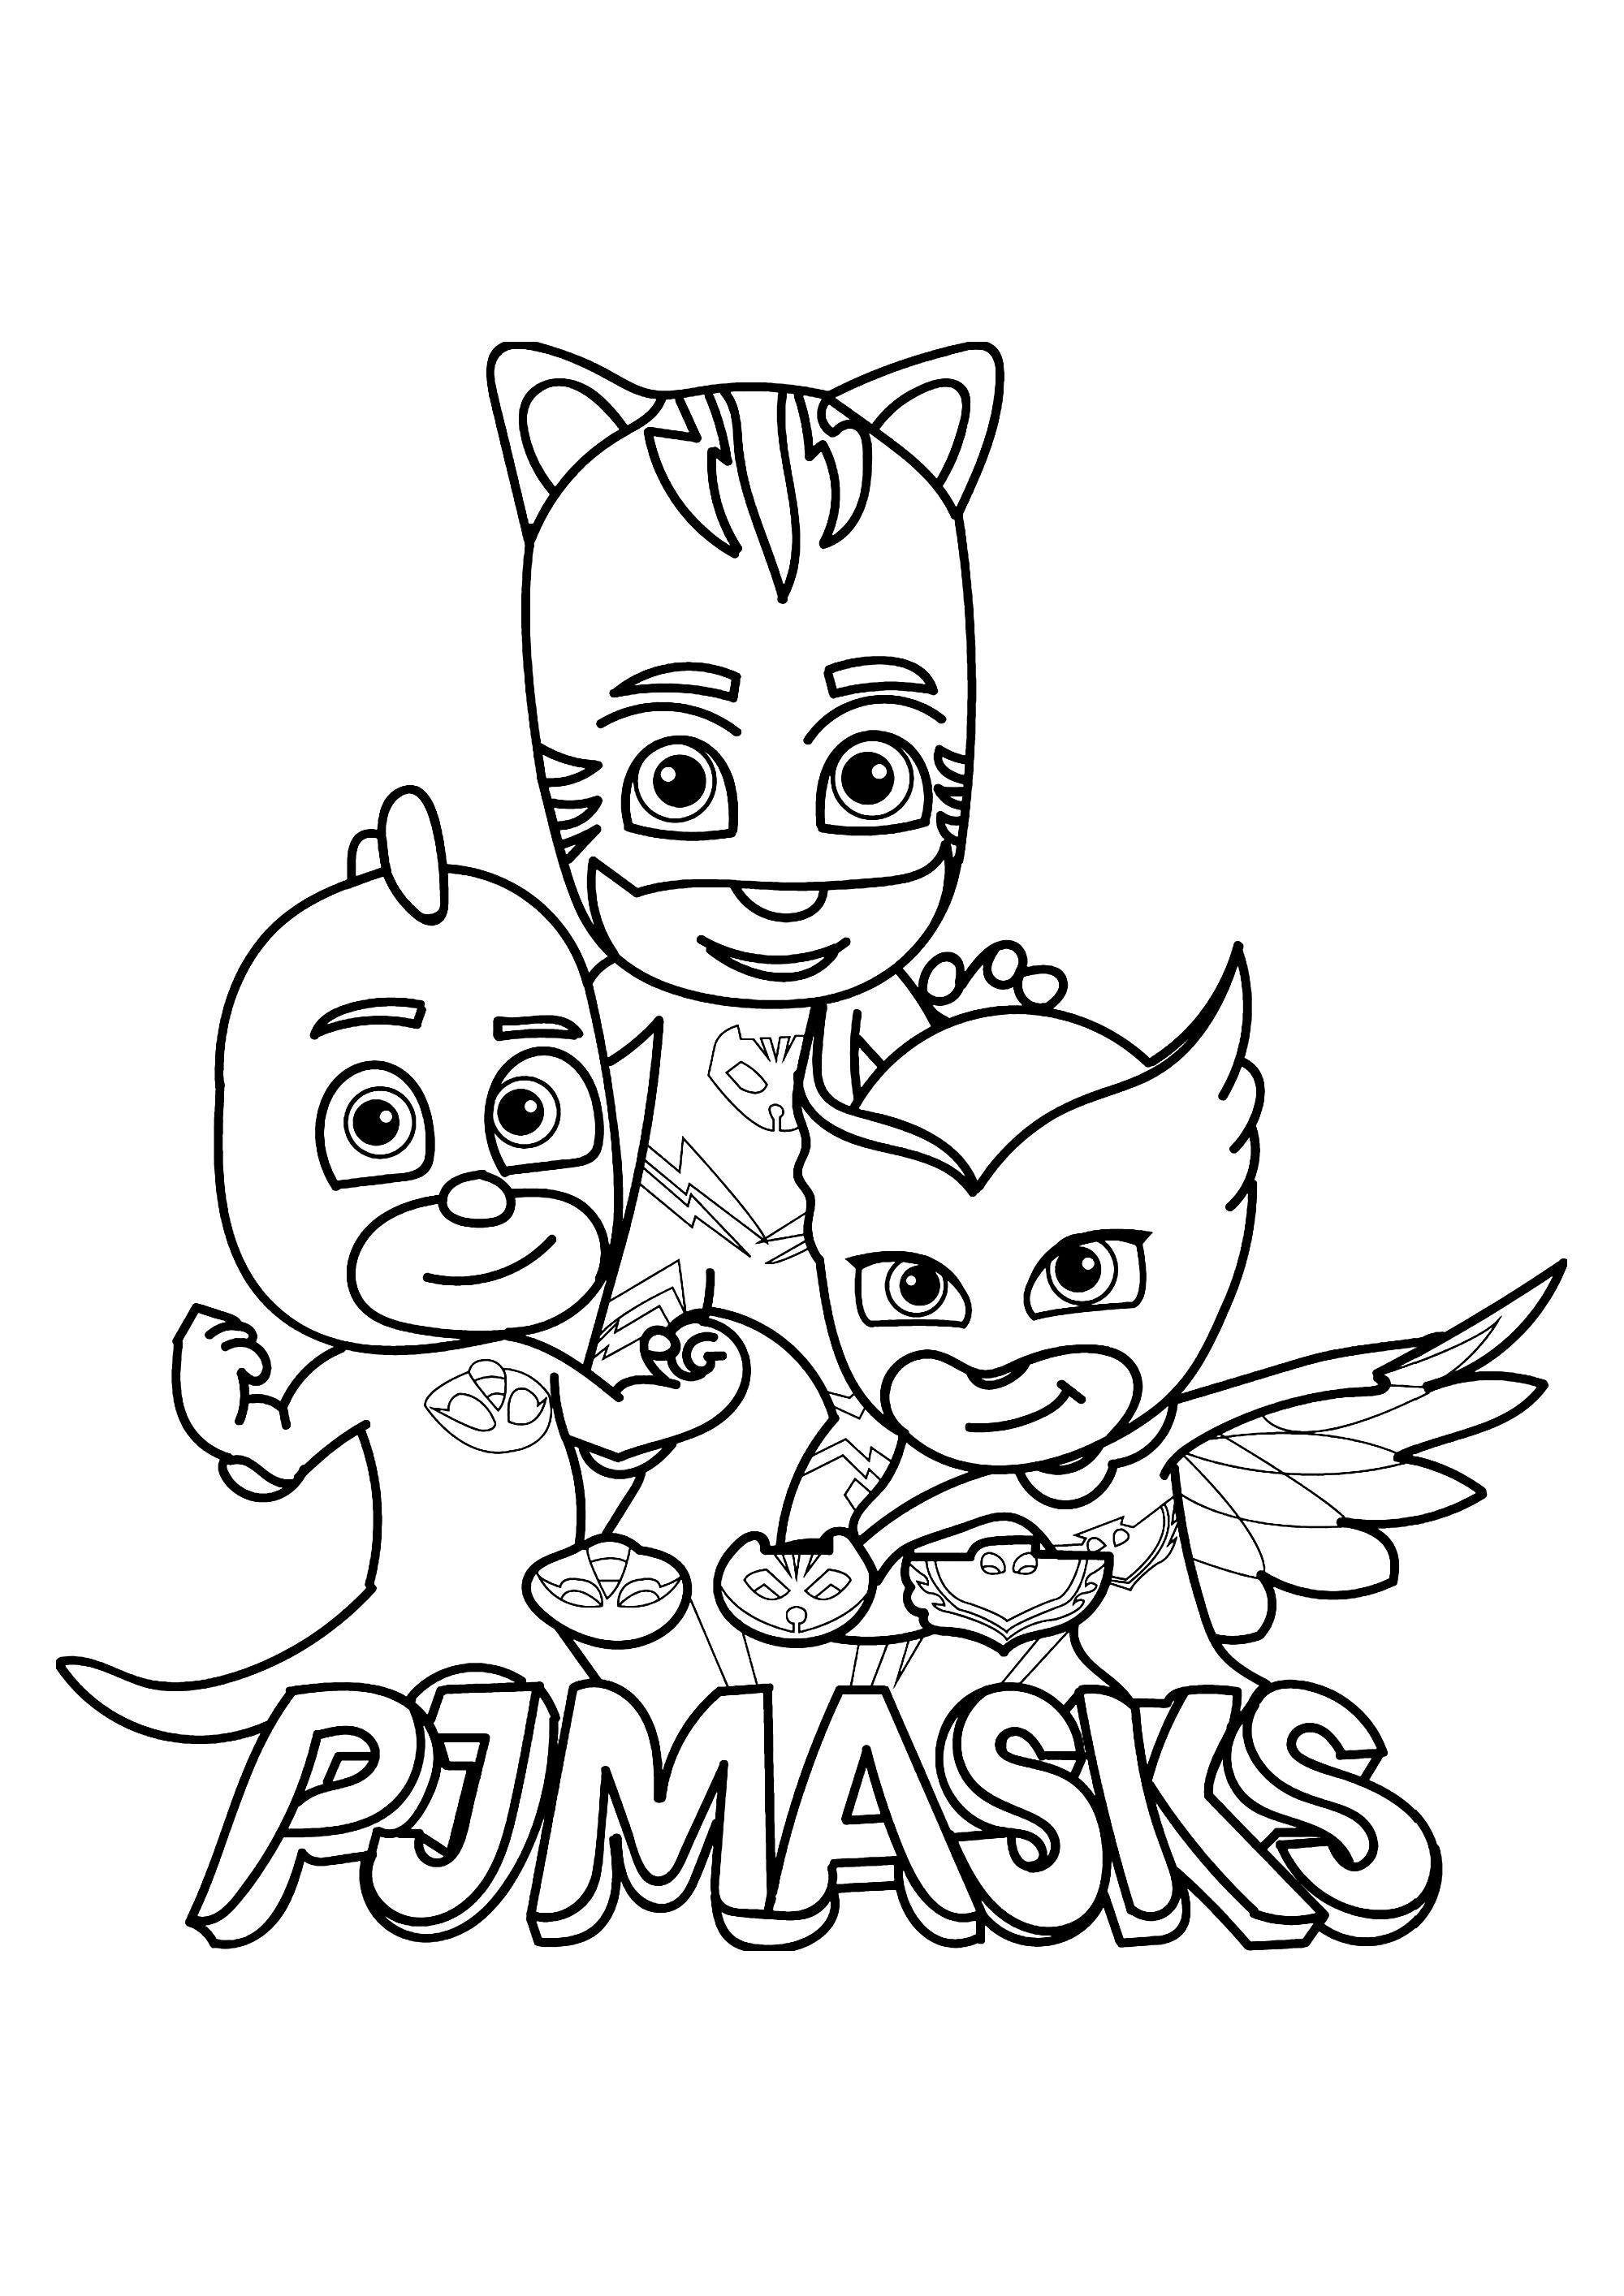 coloring template coloring for kids cartoon coloring pages best coloring pages for kids for coloring template coloring kids